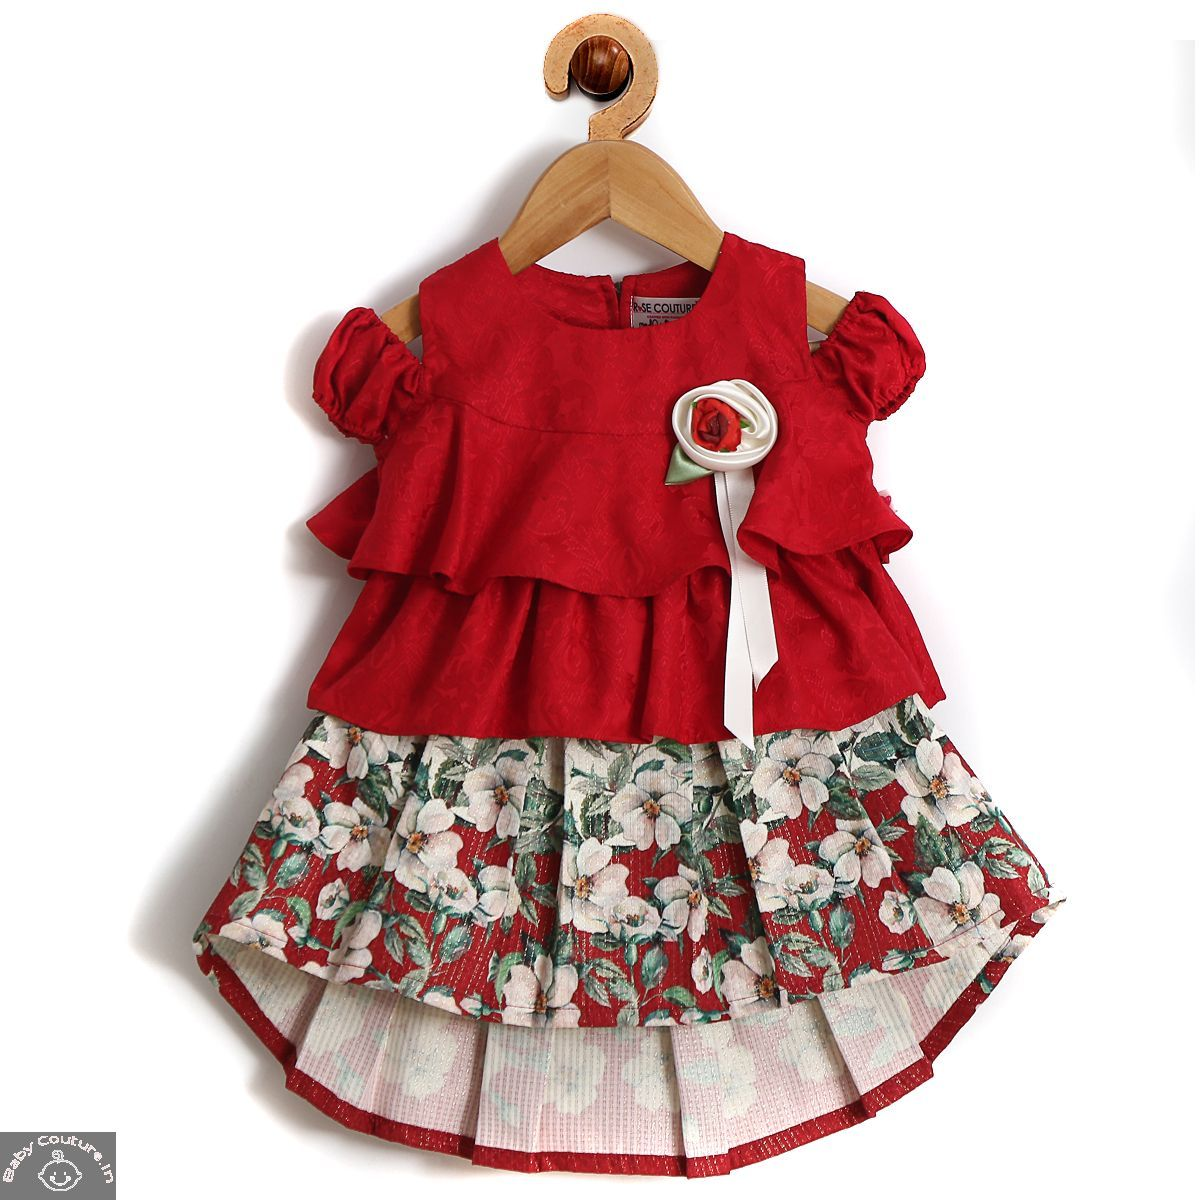 Rose Couture Layered And Pleated Skirt Top Set In 2020 Baby Girl Dresses Online Skirt And Top Set Girls Dresses Online